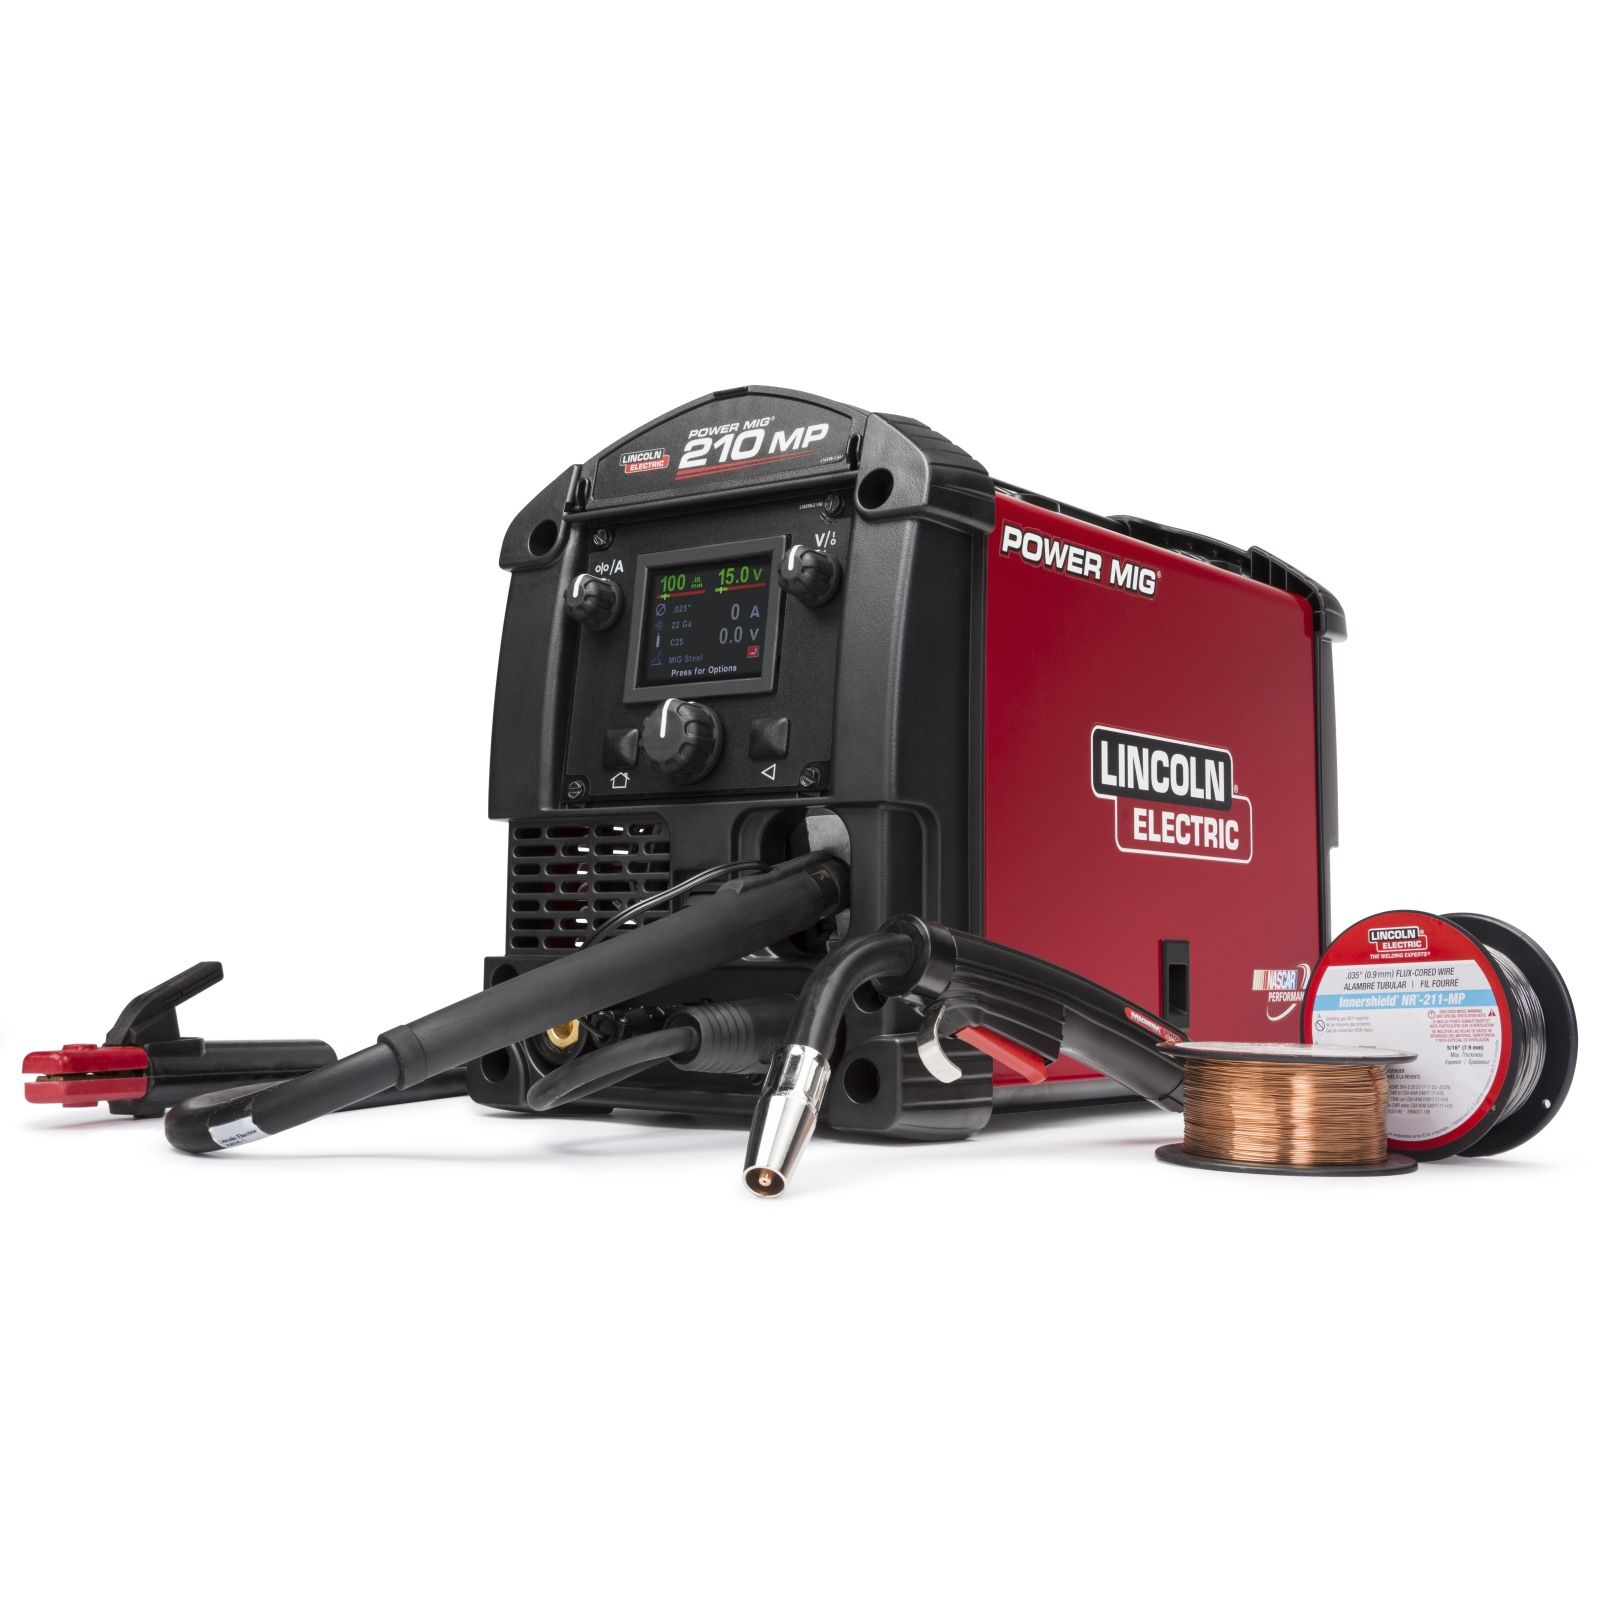 series equipment dp welder amp fluxcore pro feed com amazon welding mig lincoln black kit wire